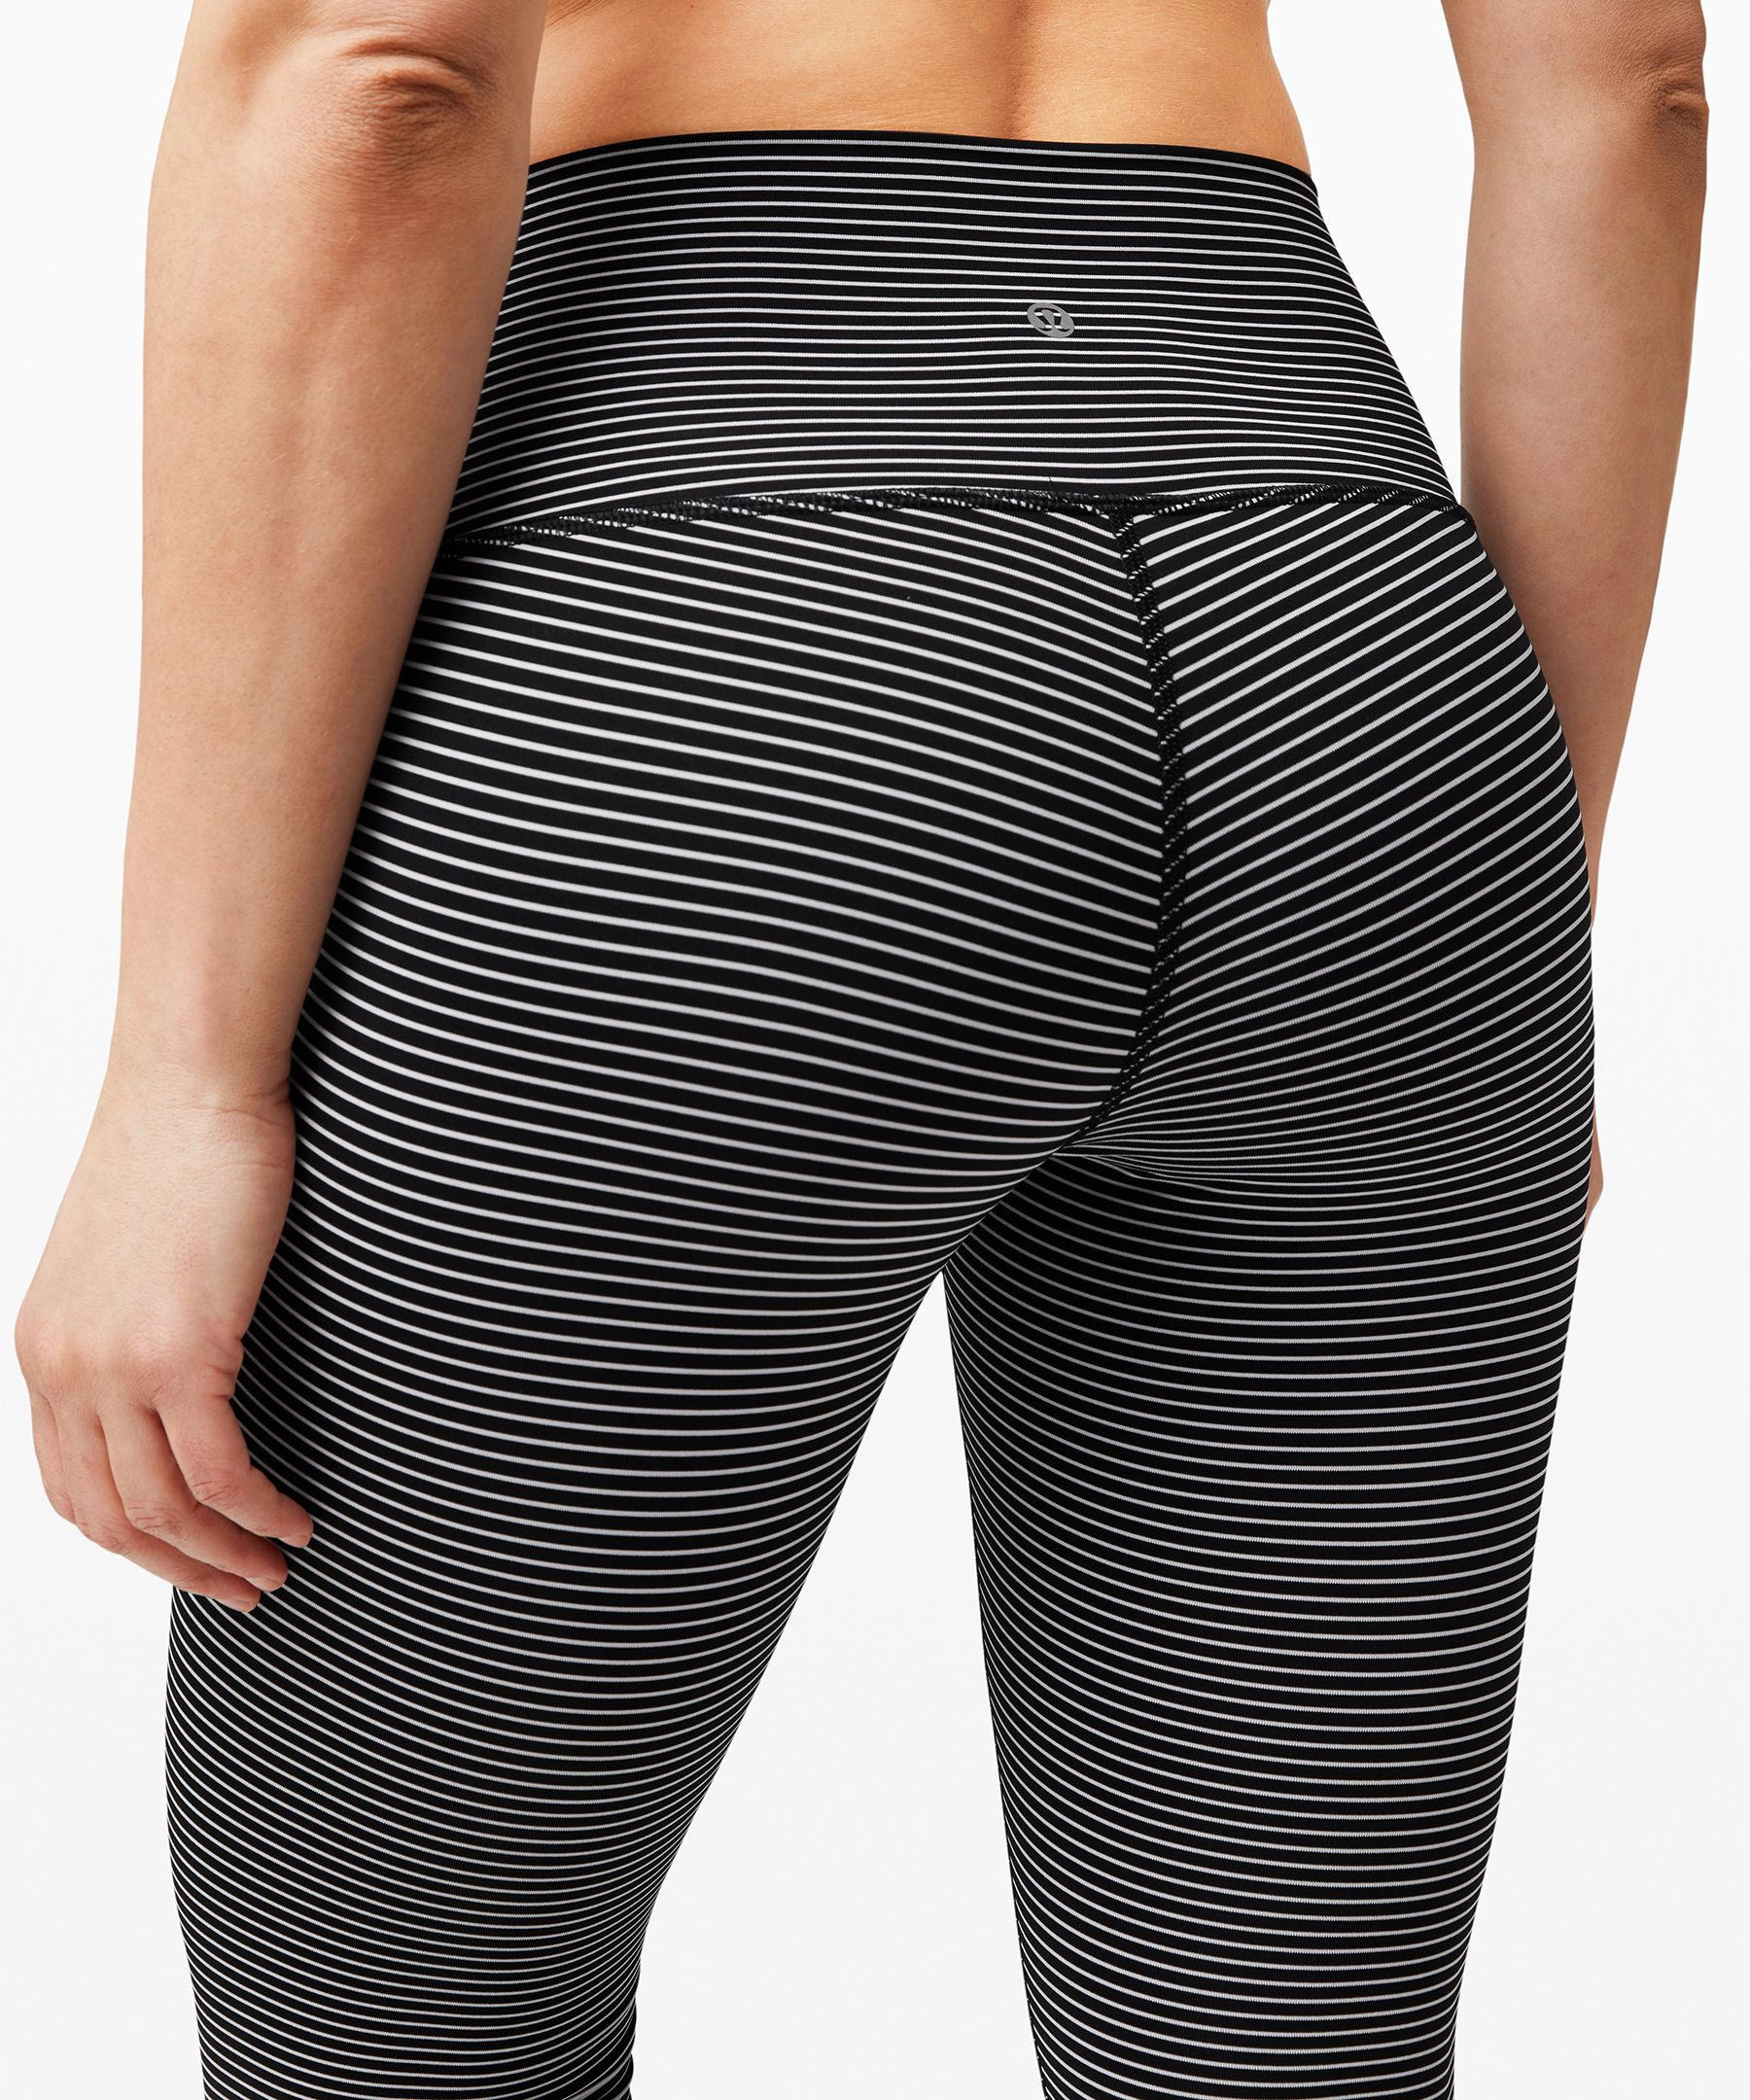 Wunder Under High-Rise 7/8 Tight Luxtreme 25